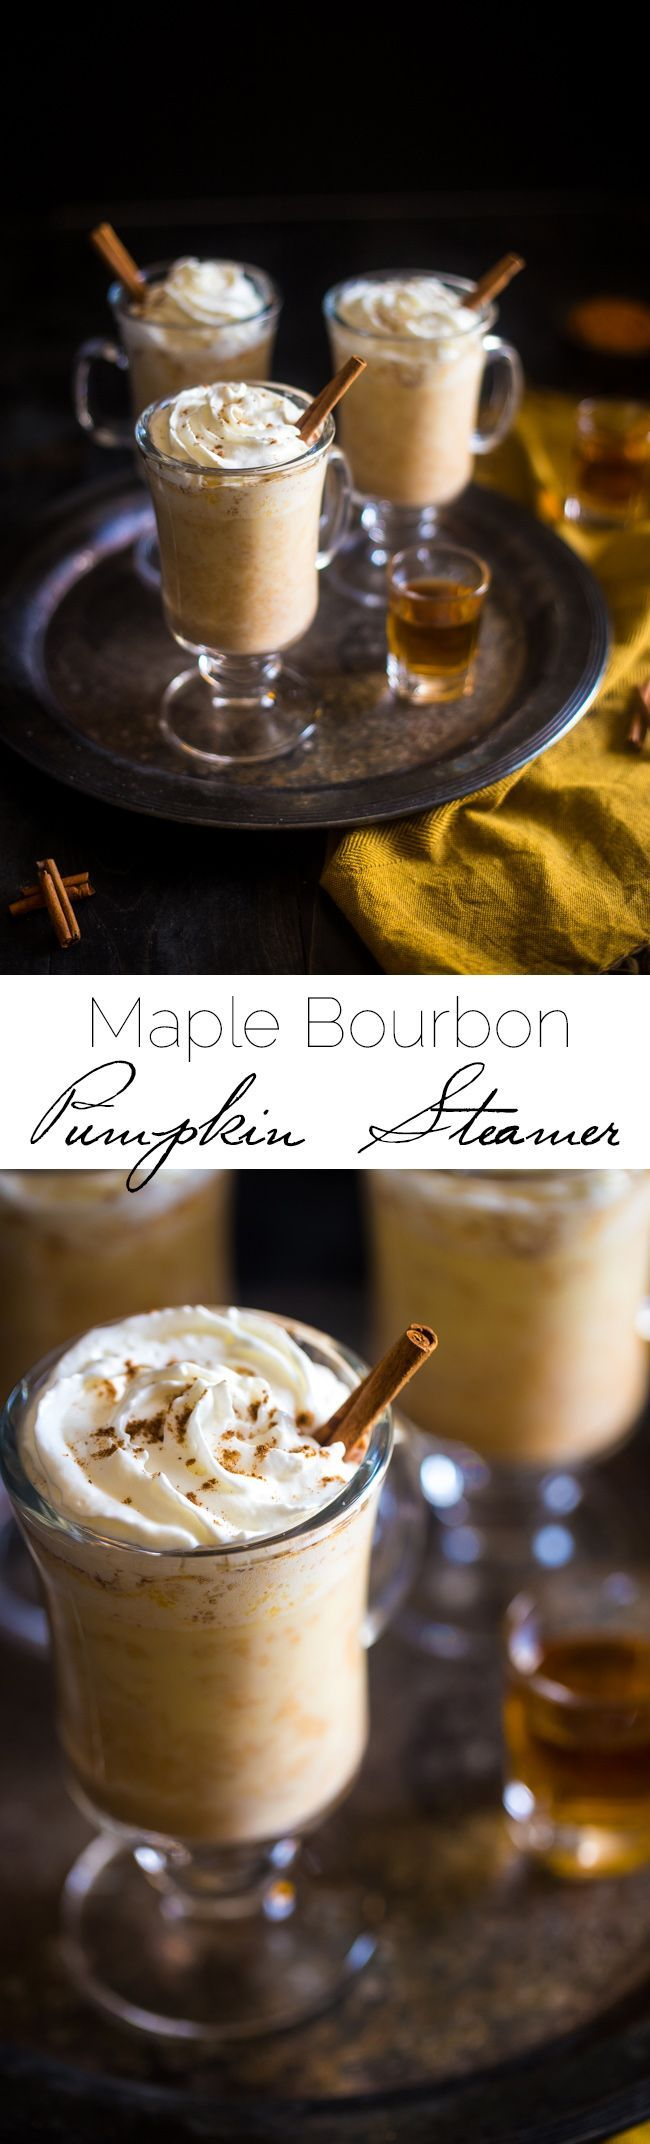 Maple Pumpkin Steamed Almond Milk with Bourbon - Mixed with pumpkin puree, naturally sweetened with maple syrup and finished with bourbon. It's an easy, cozy drink for the fall!   Taylor Kiser: